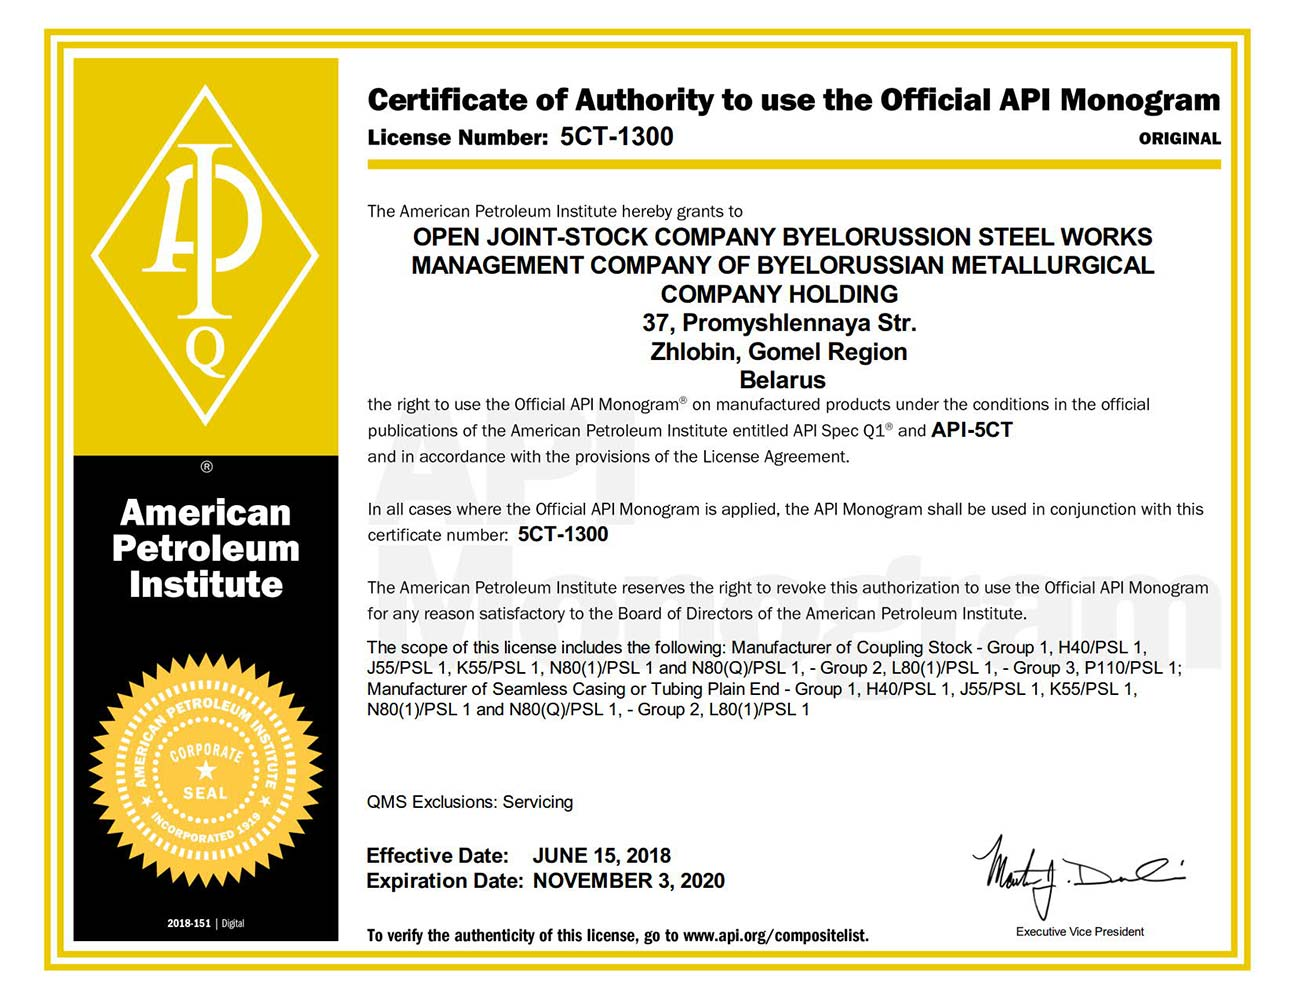 Certificate of Authority № 5СТ-1300 (American Petroleum Institute) to use the Original API Monogram – manufacture of coupling stock Group1, H40/PSL 1, J55/PSL 1, K55/PSL 1, N80(1)/PSL 1 and N80(Q)/PSL 1, Group-2, L80(1)/PSL 1, Group-3, P110/PSL 1;  manufacture of seamless casing or tube plain end Group-1, H40/PSL 1, J55/PSL 1, K55/PSL 1, N80(1)/PSL 1 and N80(Q)/PSL 1 , Group-2, L80(1)/PSL1 (the scope is expanded).